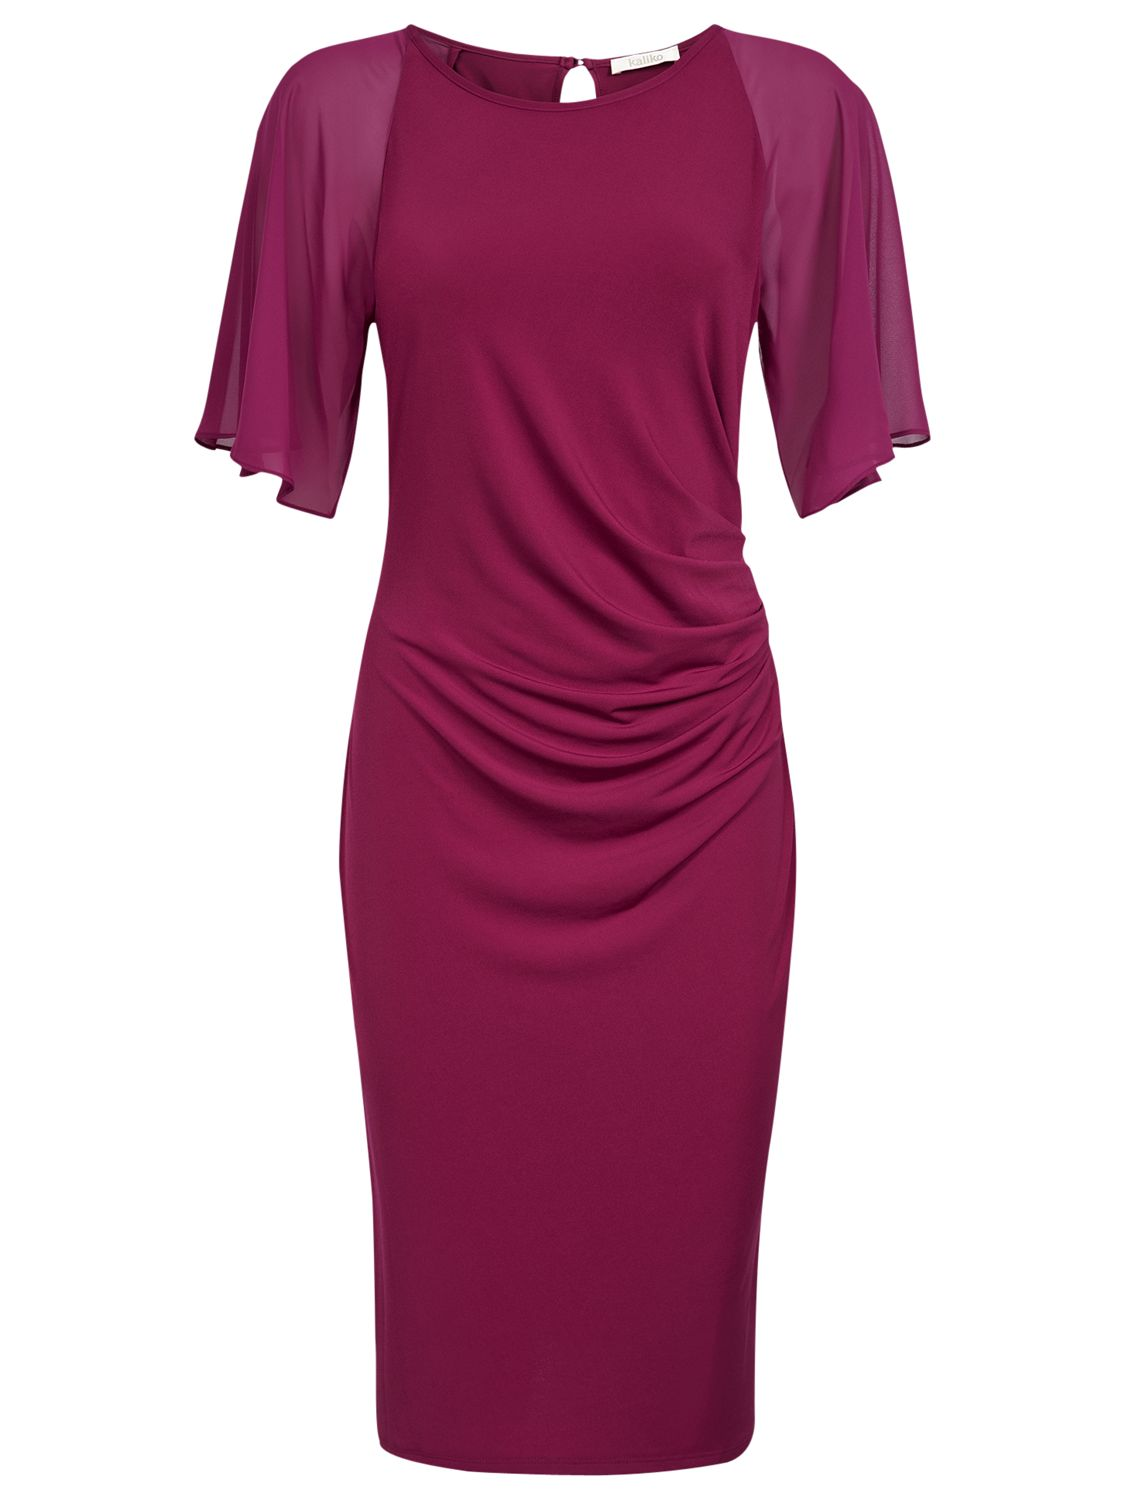 kaliko angel sleeve dress, kaliko, angel, sleeve, dress, berry|navy|navy|navy|berry|berry, 10|18|10|14|14|16, clearance, womenswear offers, womens dresses offers, special offers, 20% off selected kaliko, women, plus size, womens dresses, 1585553